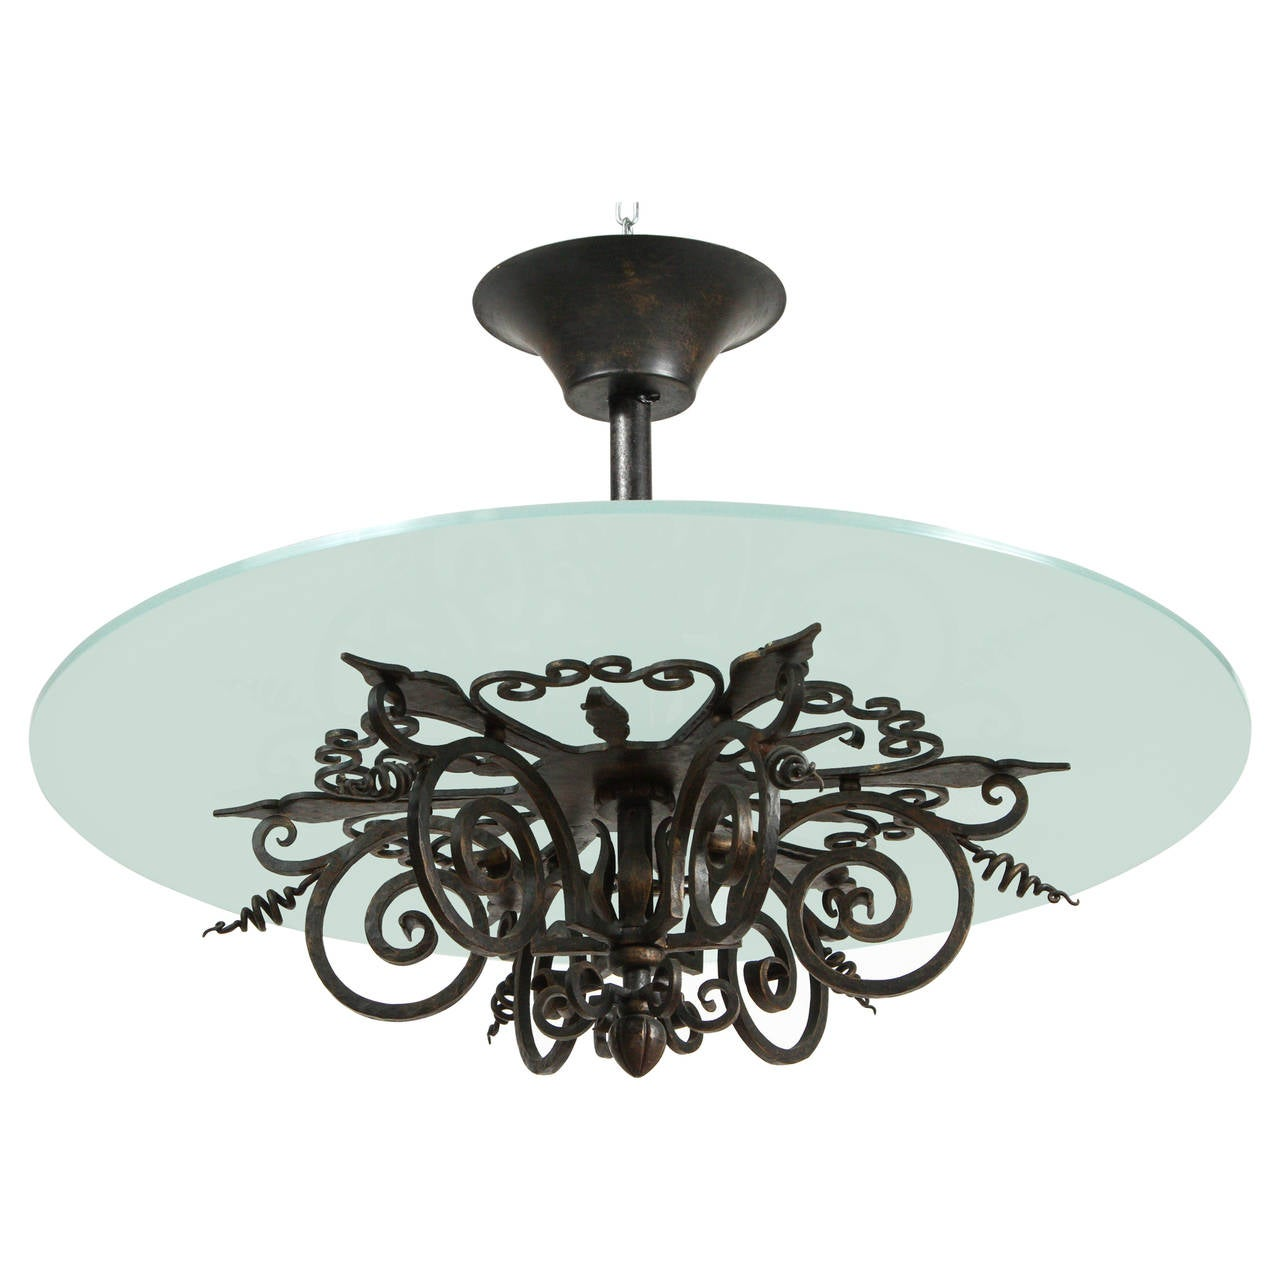 Danish iron and glass chandelier circa 1930 for sale at 1stdibs - Circa lighting chandeliers ...